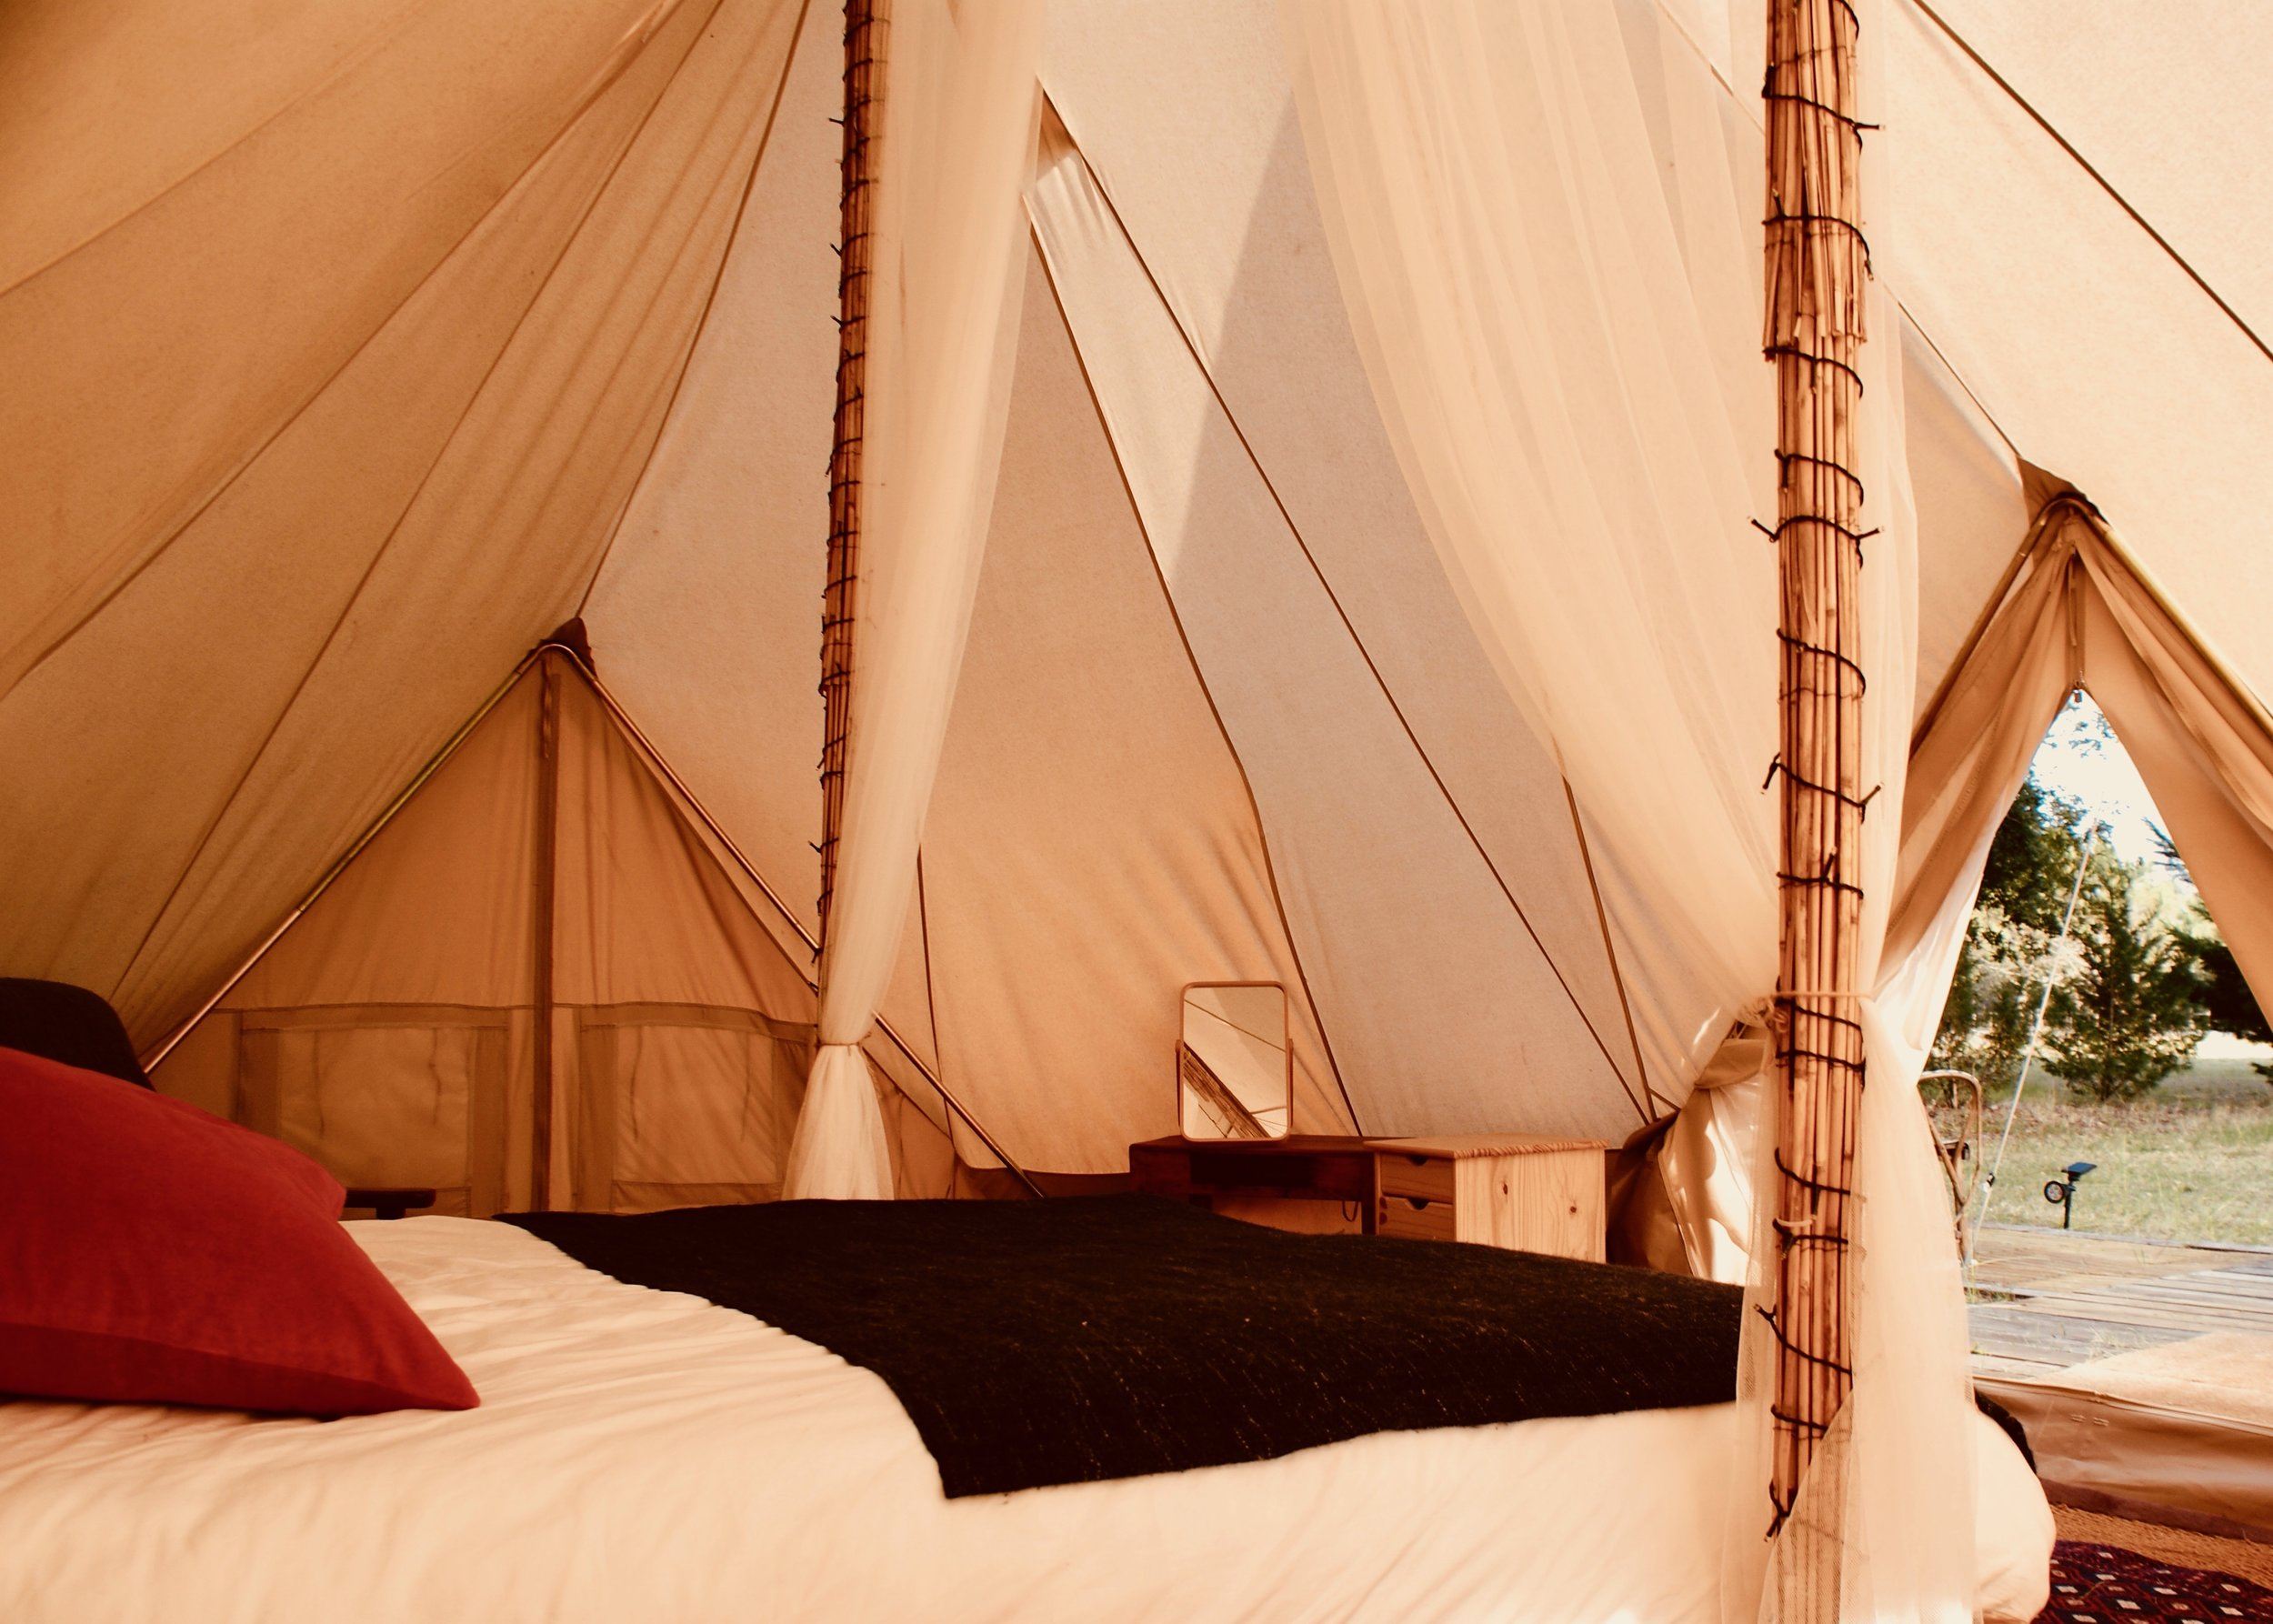 tent bell interior glamping 2017 1 sanctuary surf holiday 2.jpg